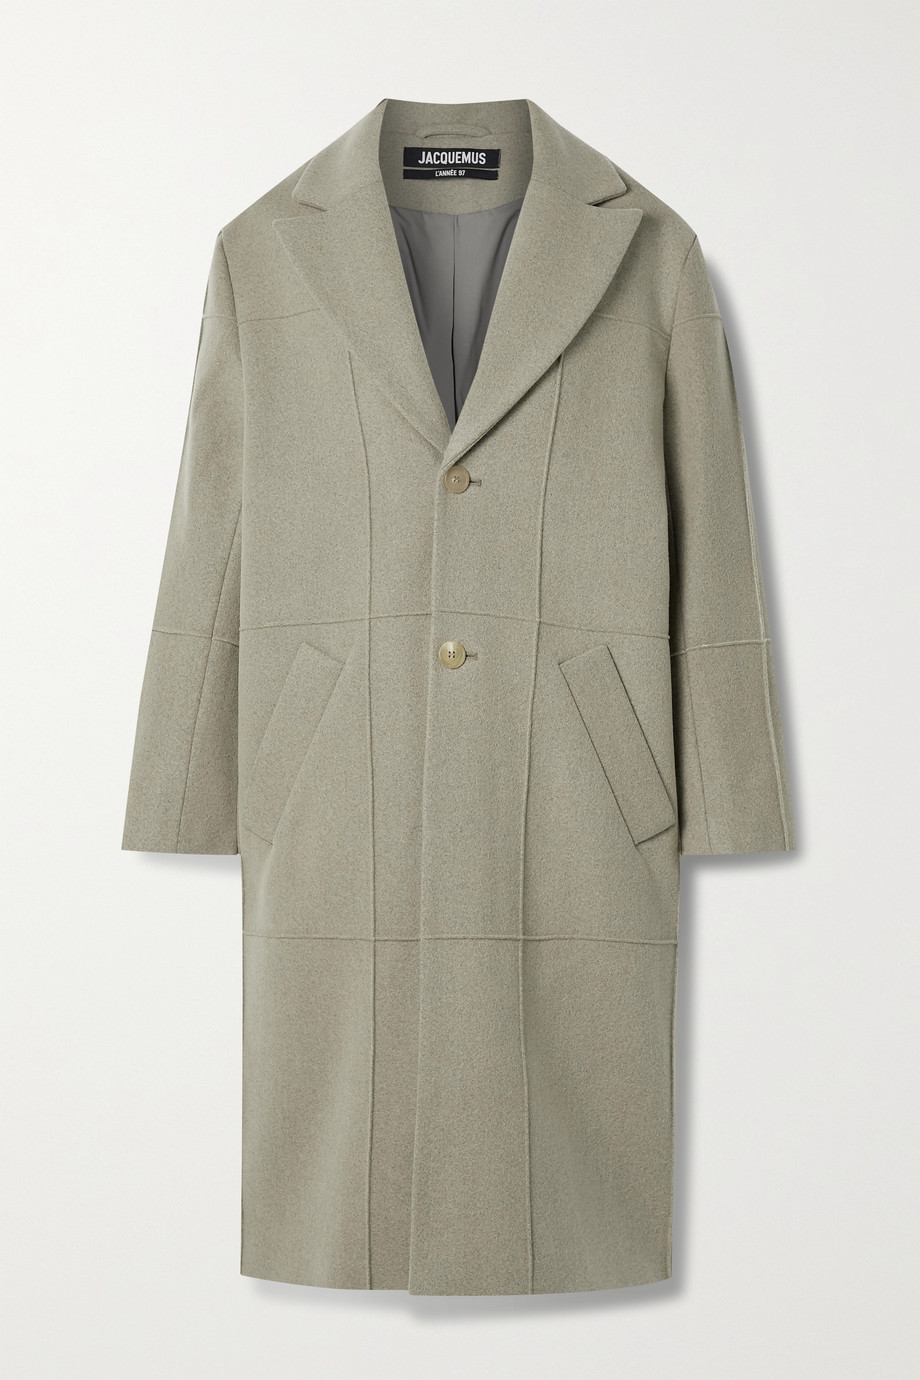 Jacquemus Carro wool-blend felt coat